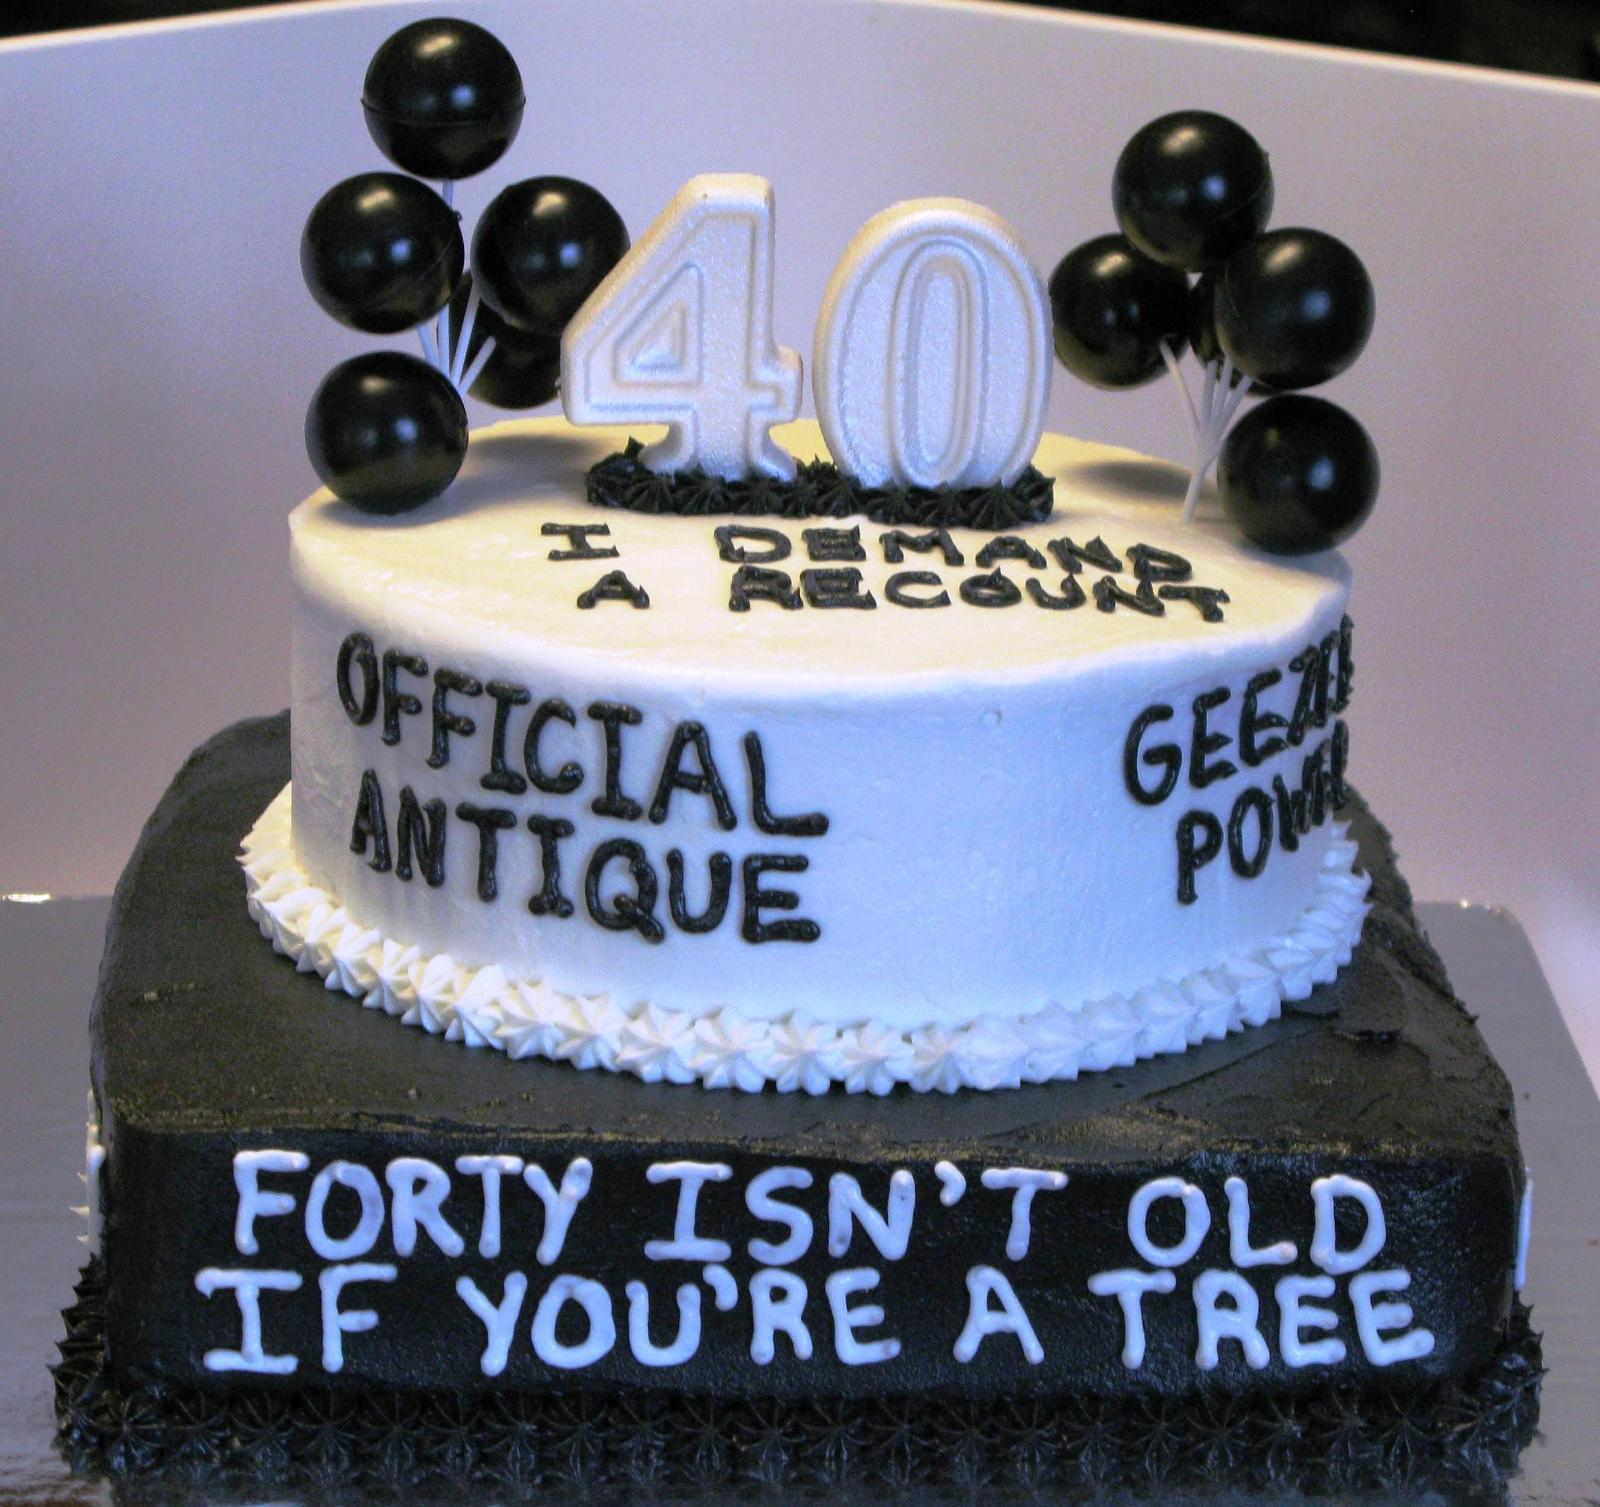 Birthday Cake Funny 40th Birthday Cake Ideas Funny Protoblogr Design 40th Birthday